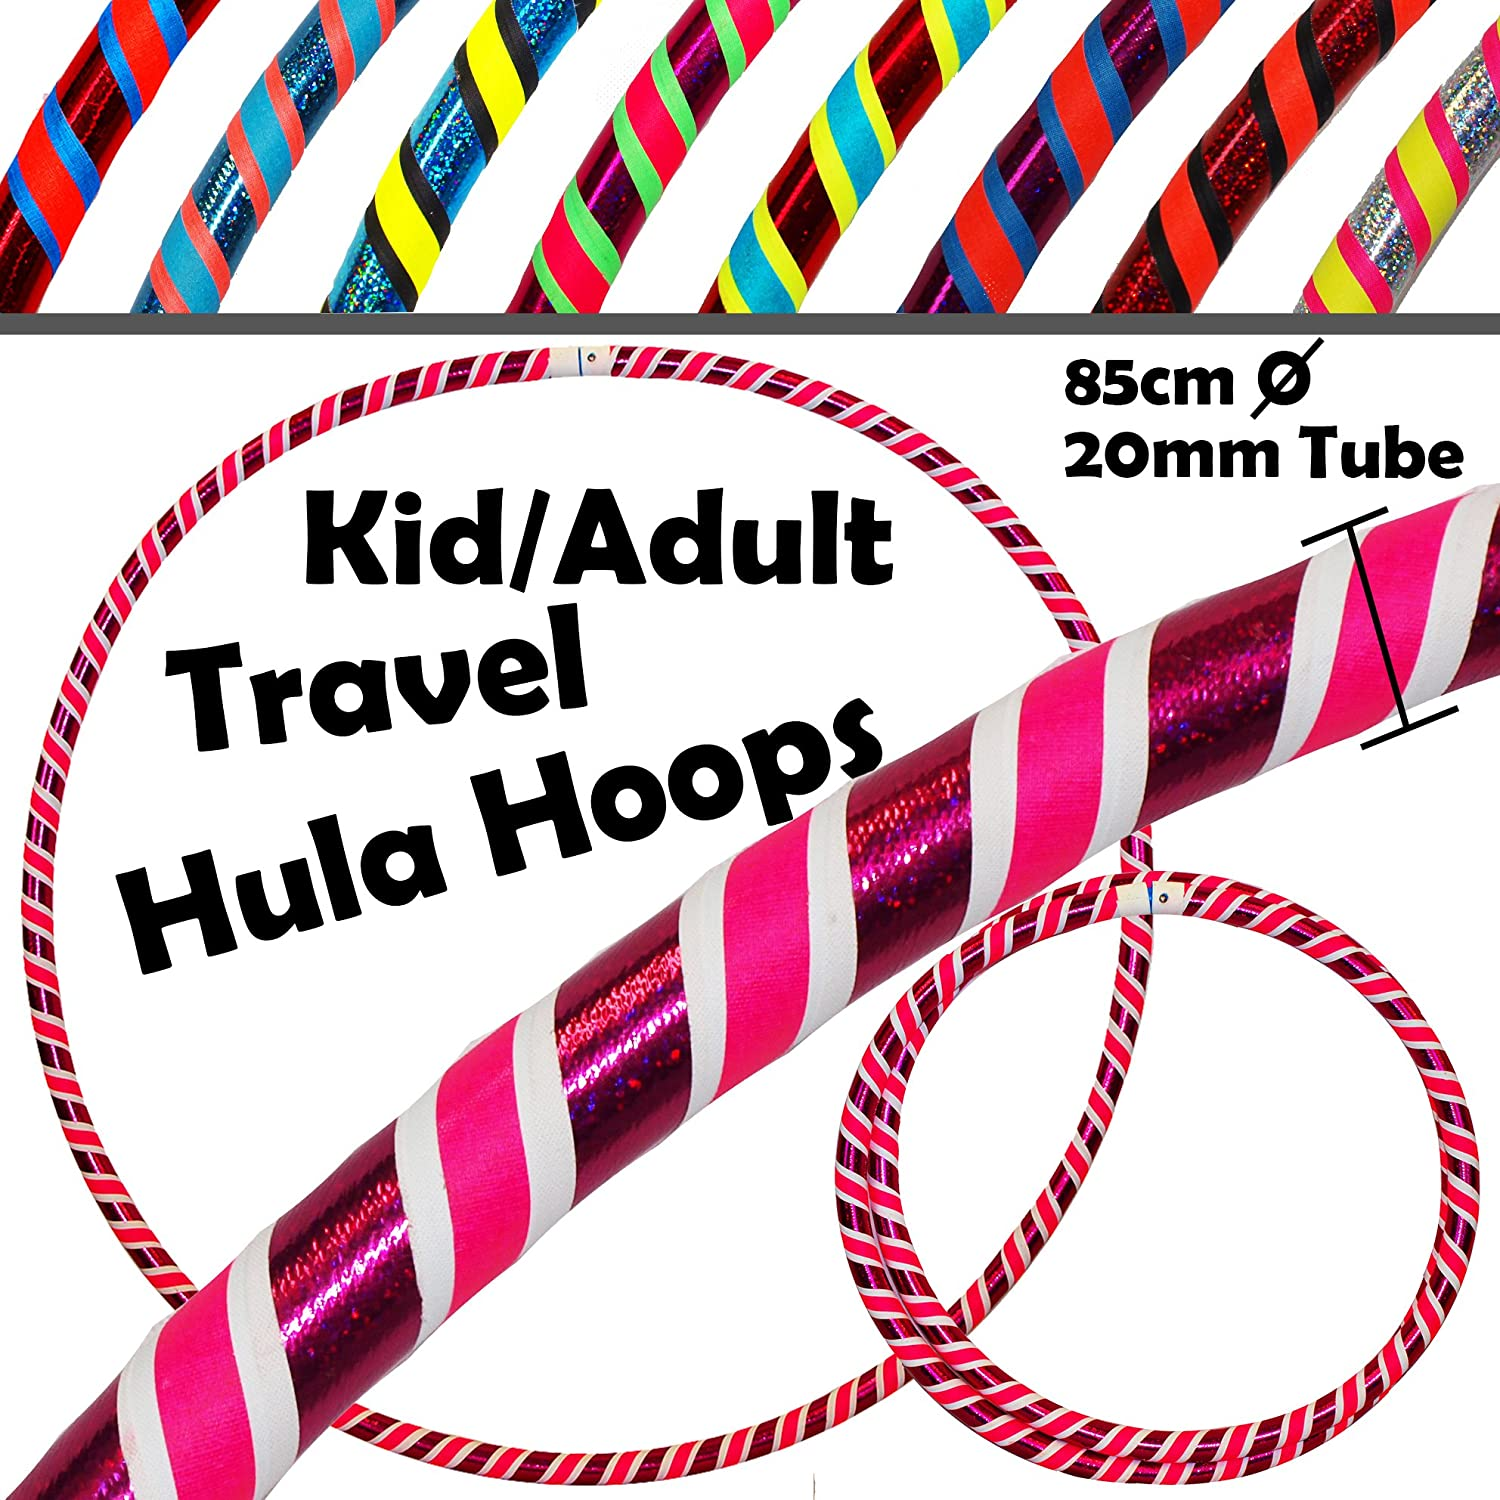 KIDS Hula Hoops (Ultra-Grip/Glitter Deco) - 3 COLOUR Weighted Childrens and Adults TRAVEL Hula Hoop (85cm/33.5 inch) - Hula Hoops For Exercise, Dance & Fitness! (420g) (Blue Glitter / Black / Yellow) Flames N Games